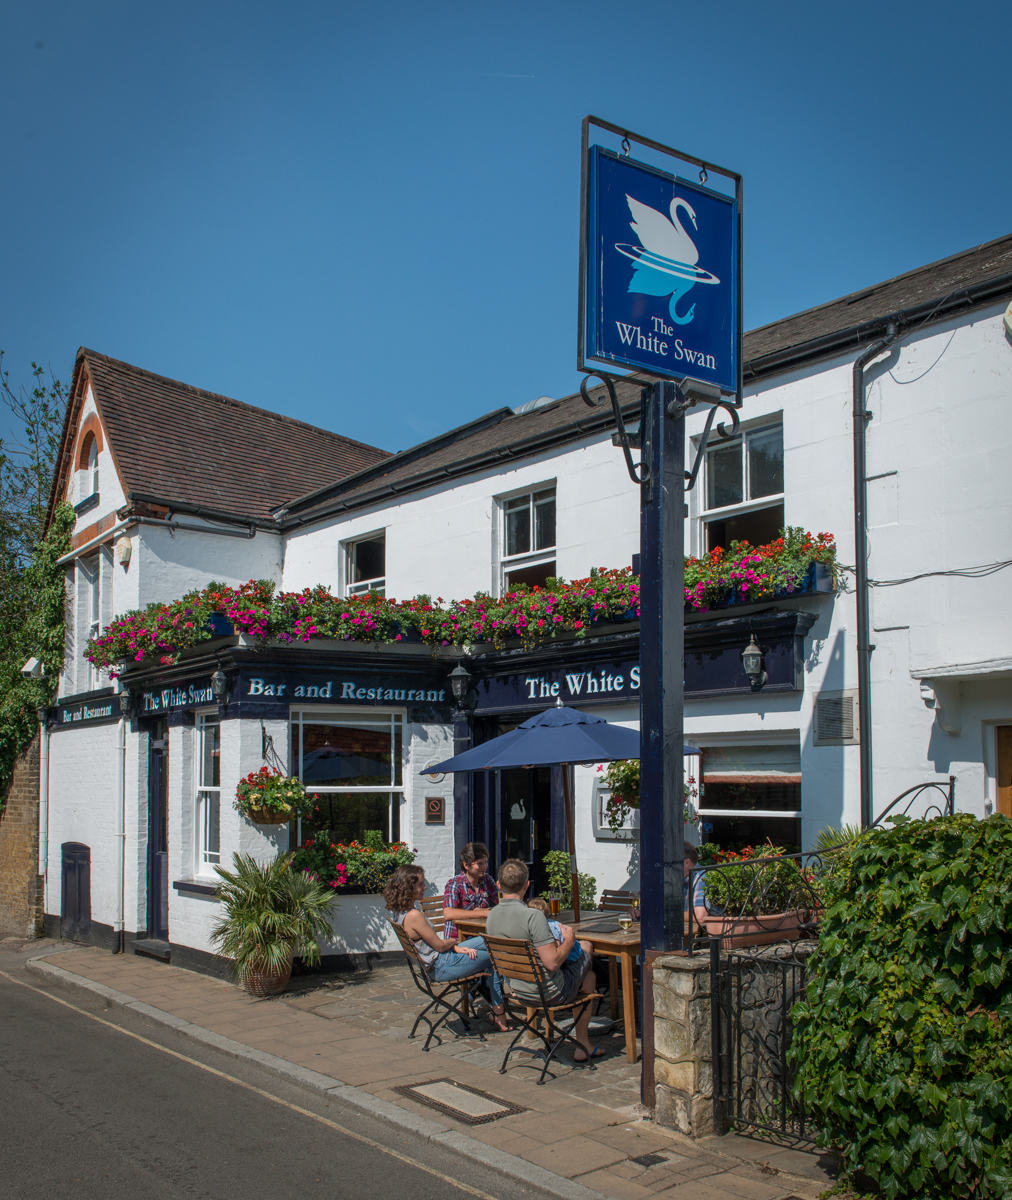 The White Swan Richomd Upon Thames